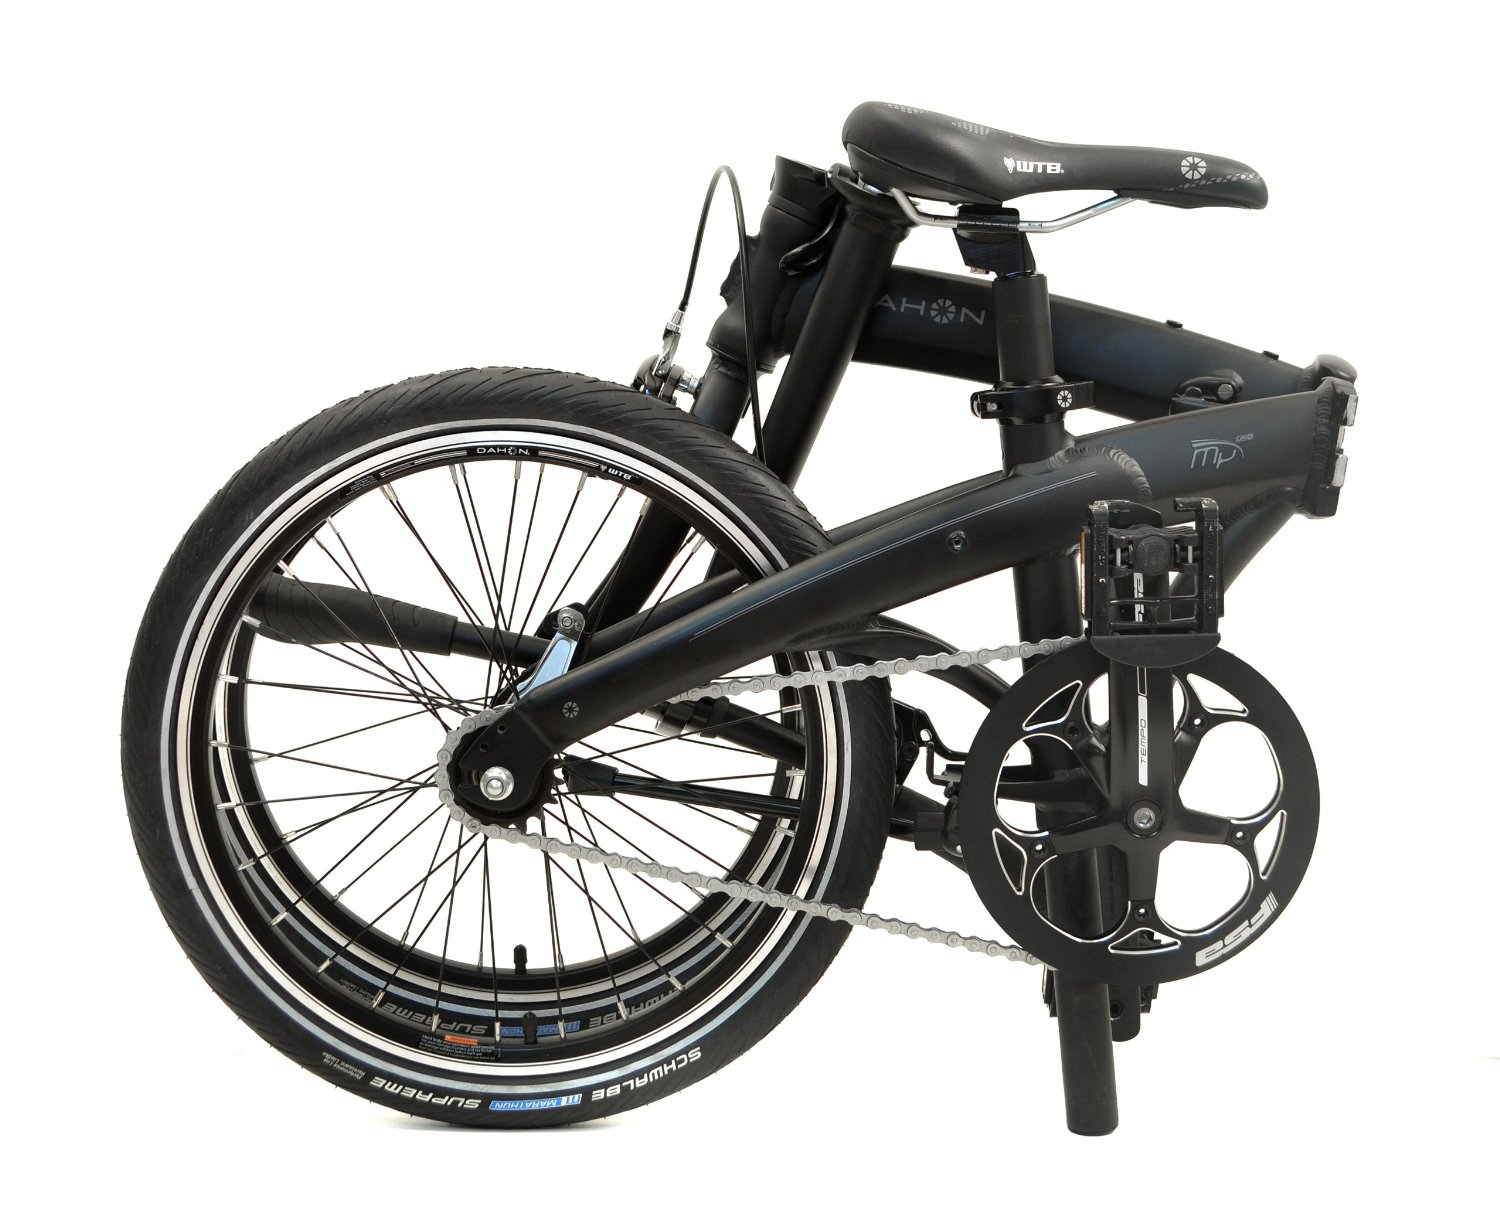 Dahon Mu Uno Folding Bike Review How Simplicity Makes